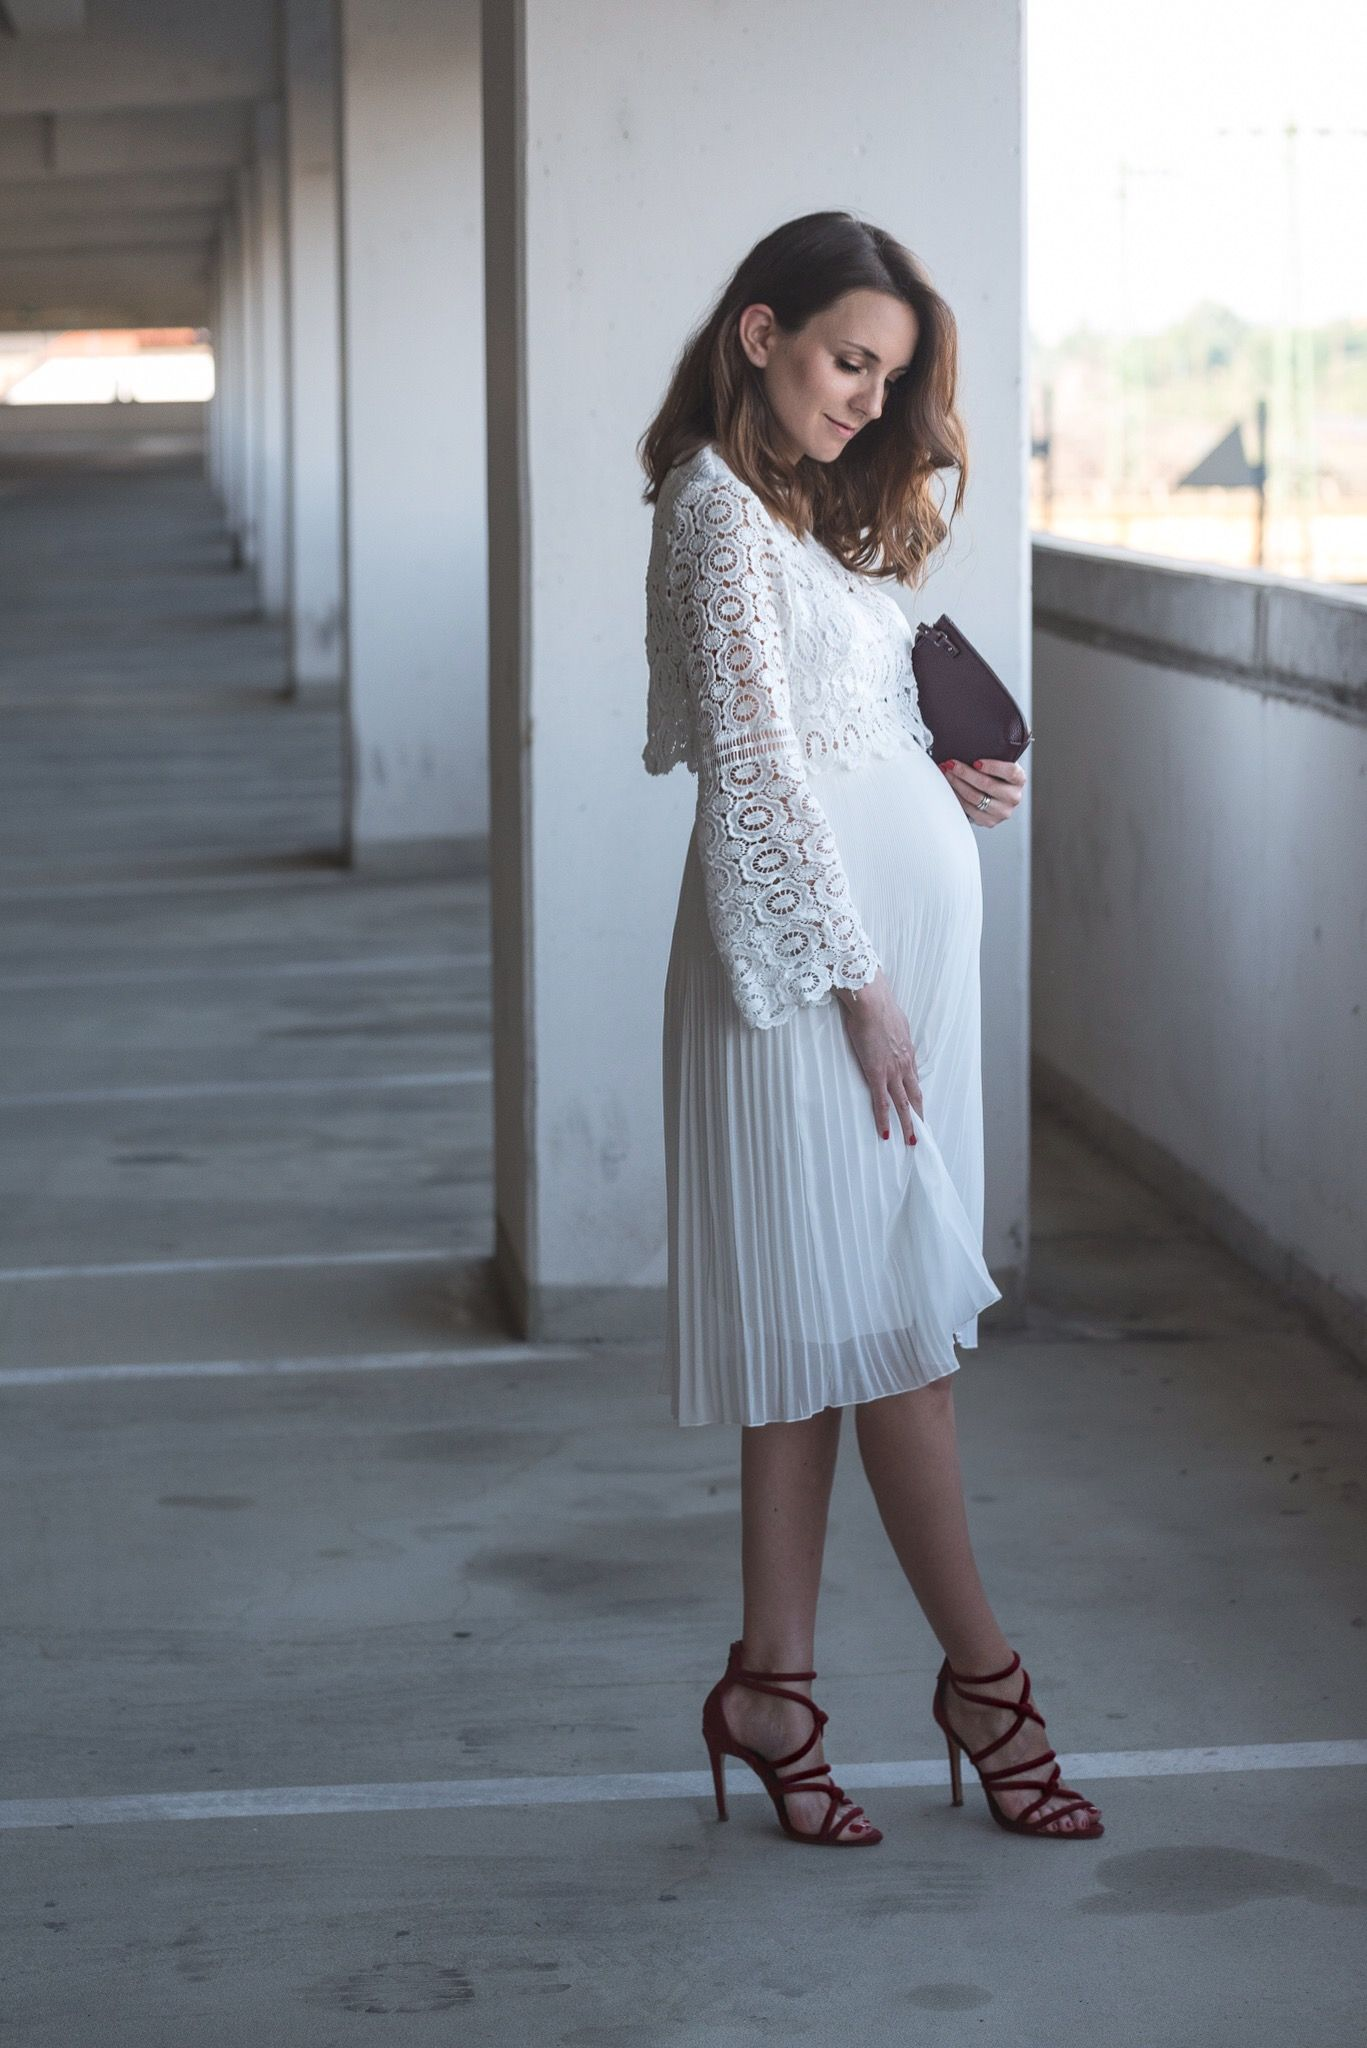 575132085814a pregnancy, week 26, outfit, maternity, all white, red shoes, high heels